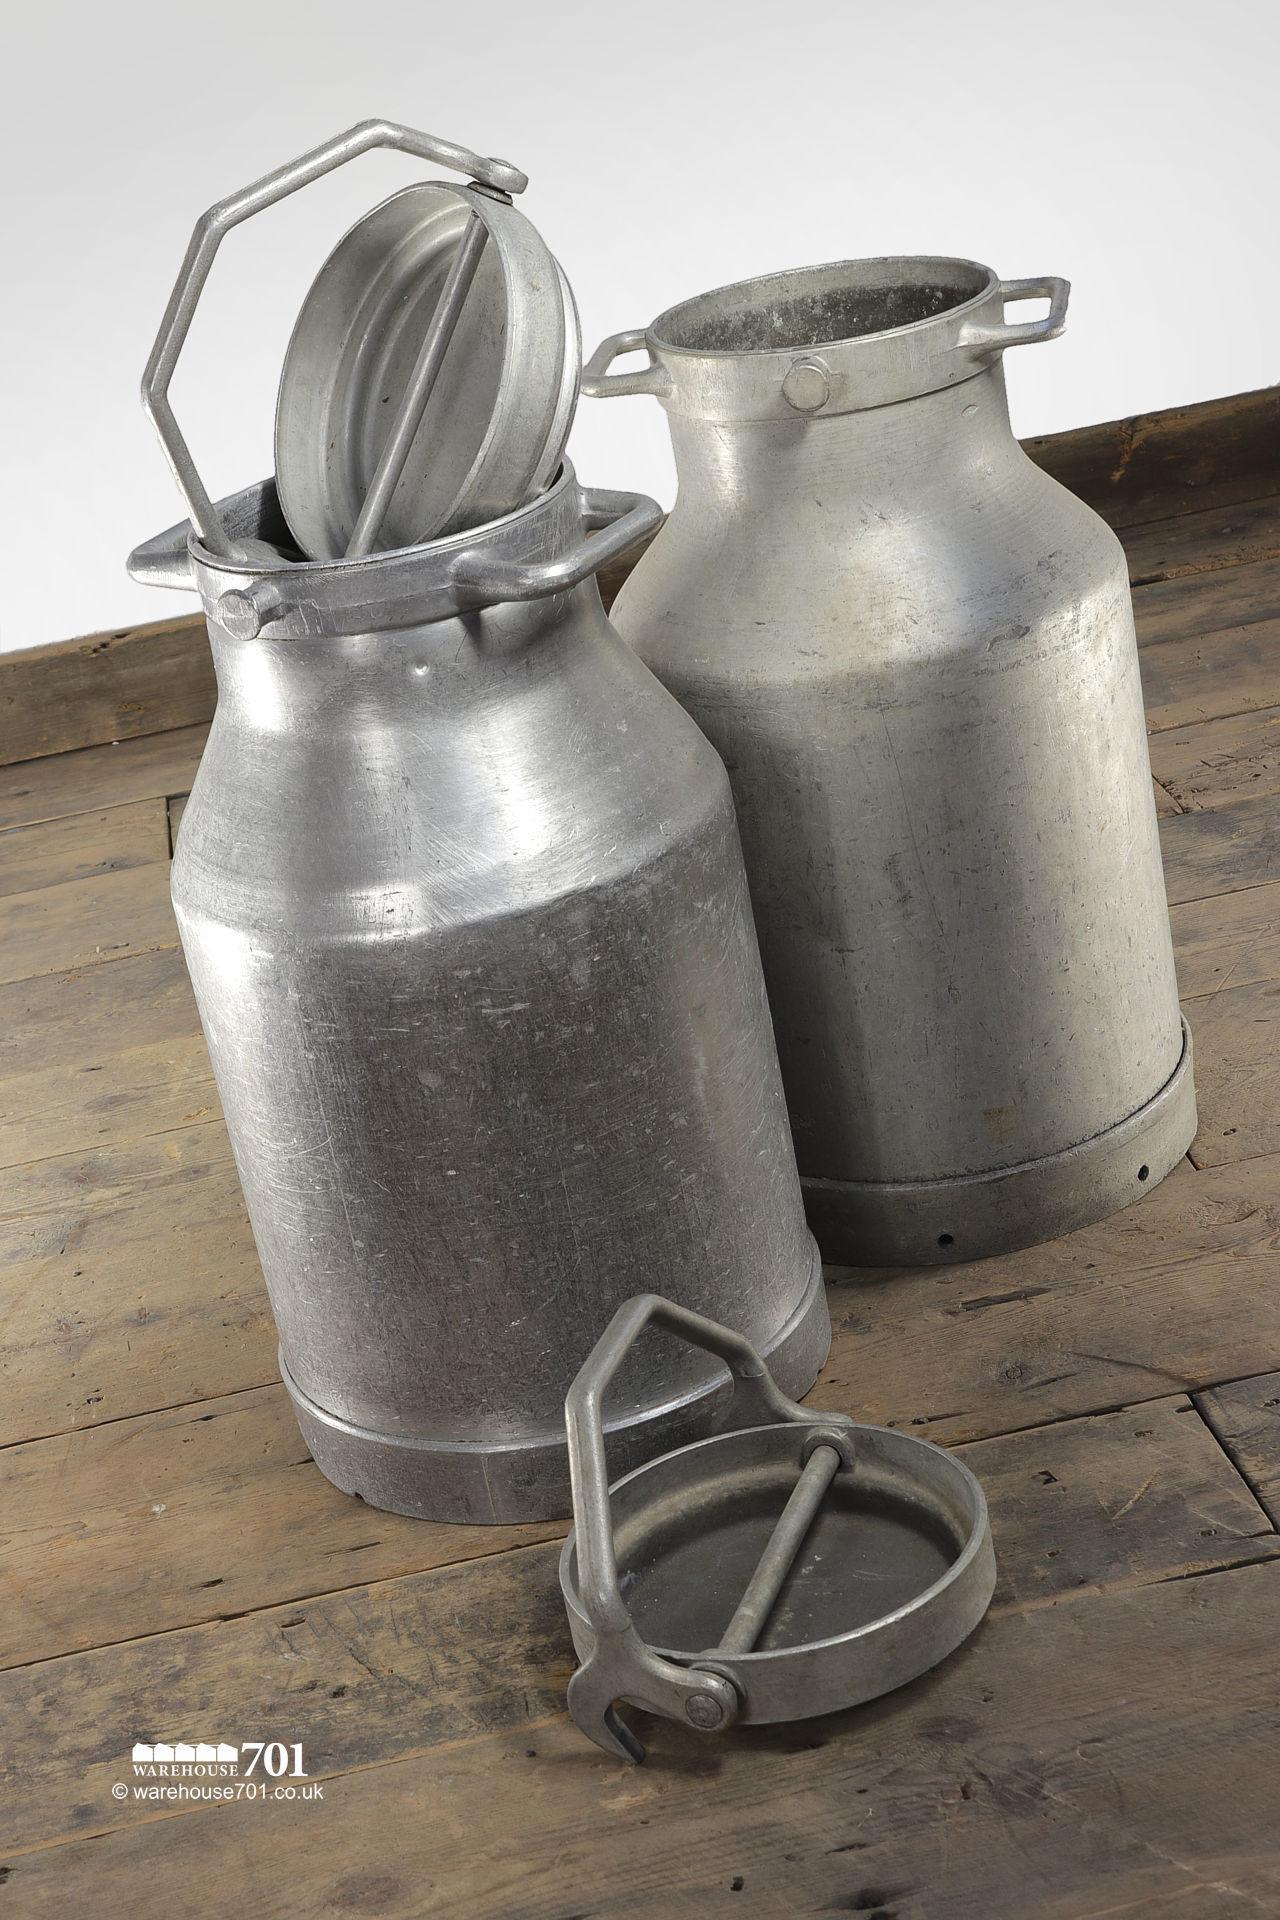 Salvaged Alloy Milk or Liquid Churns #2